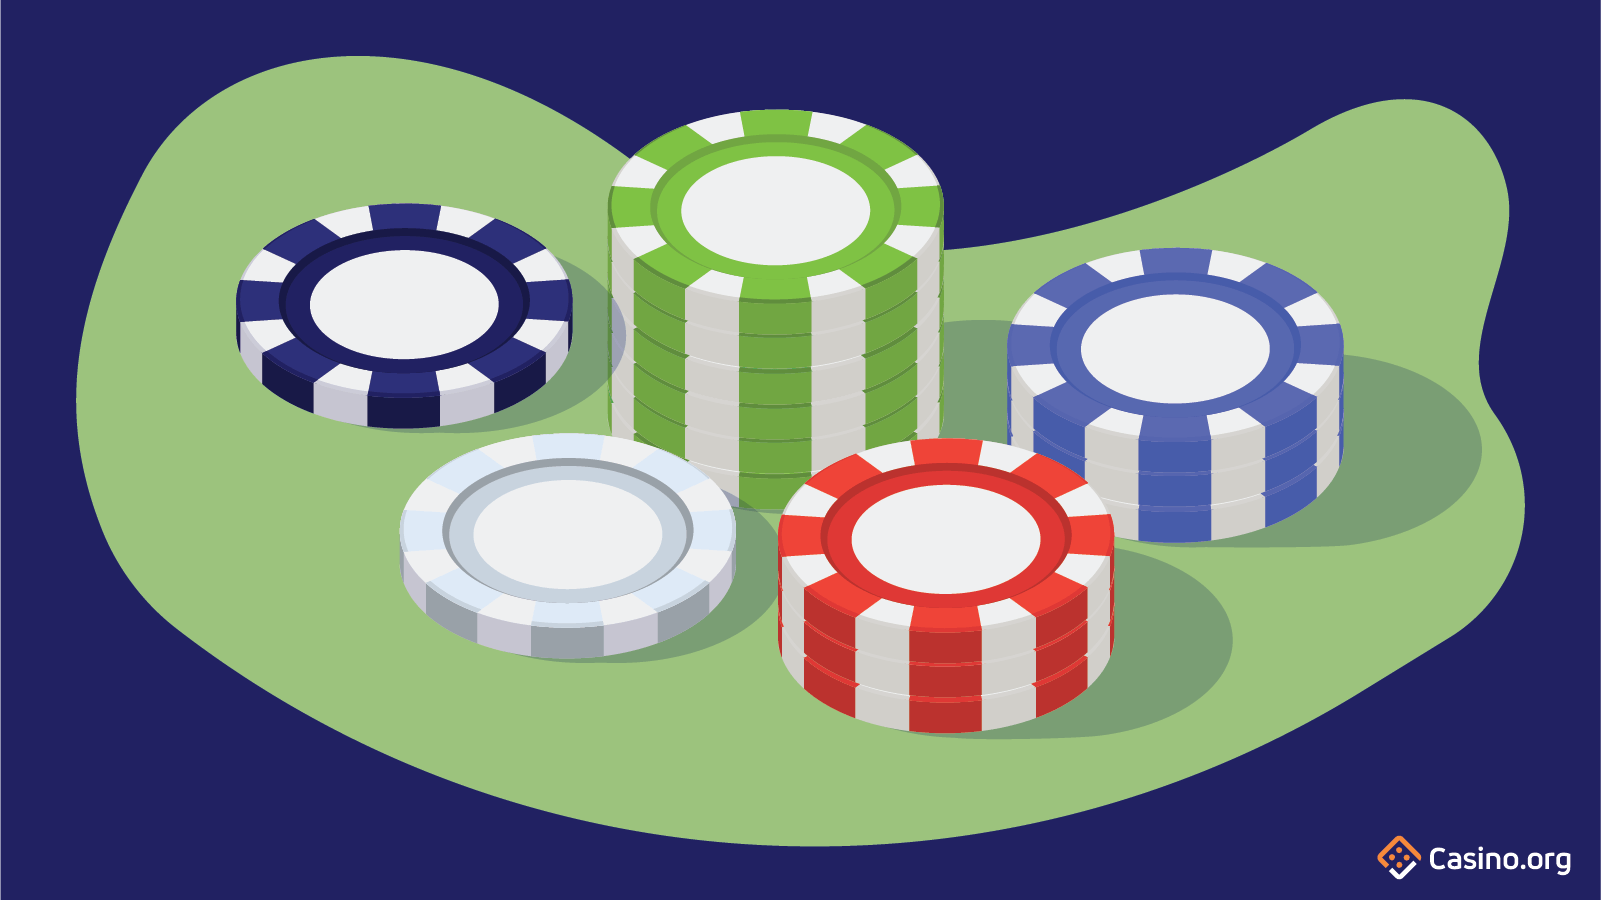 Image of poker chips stacked.